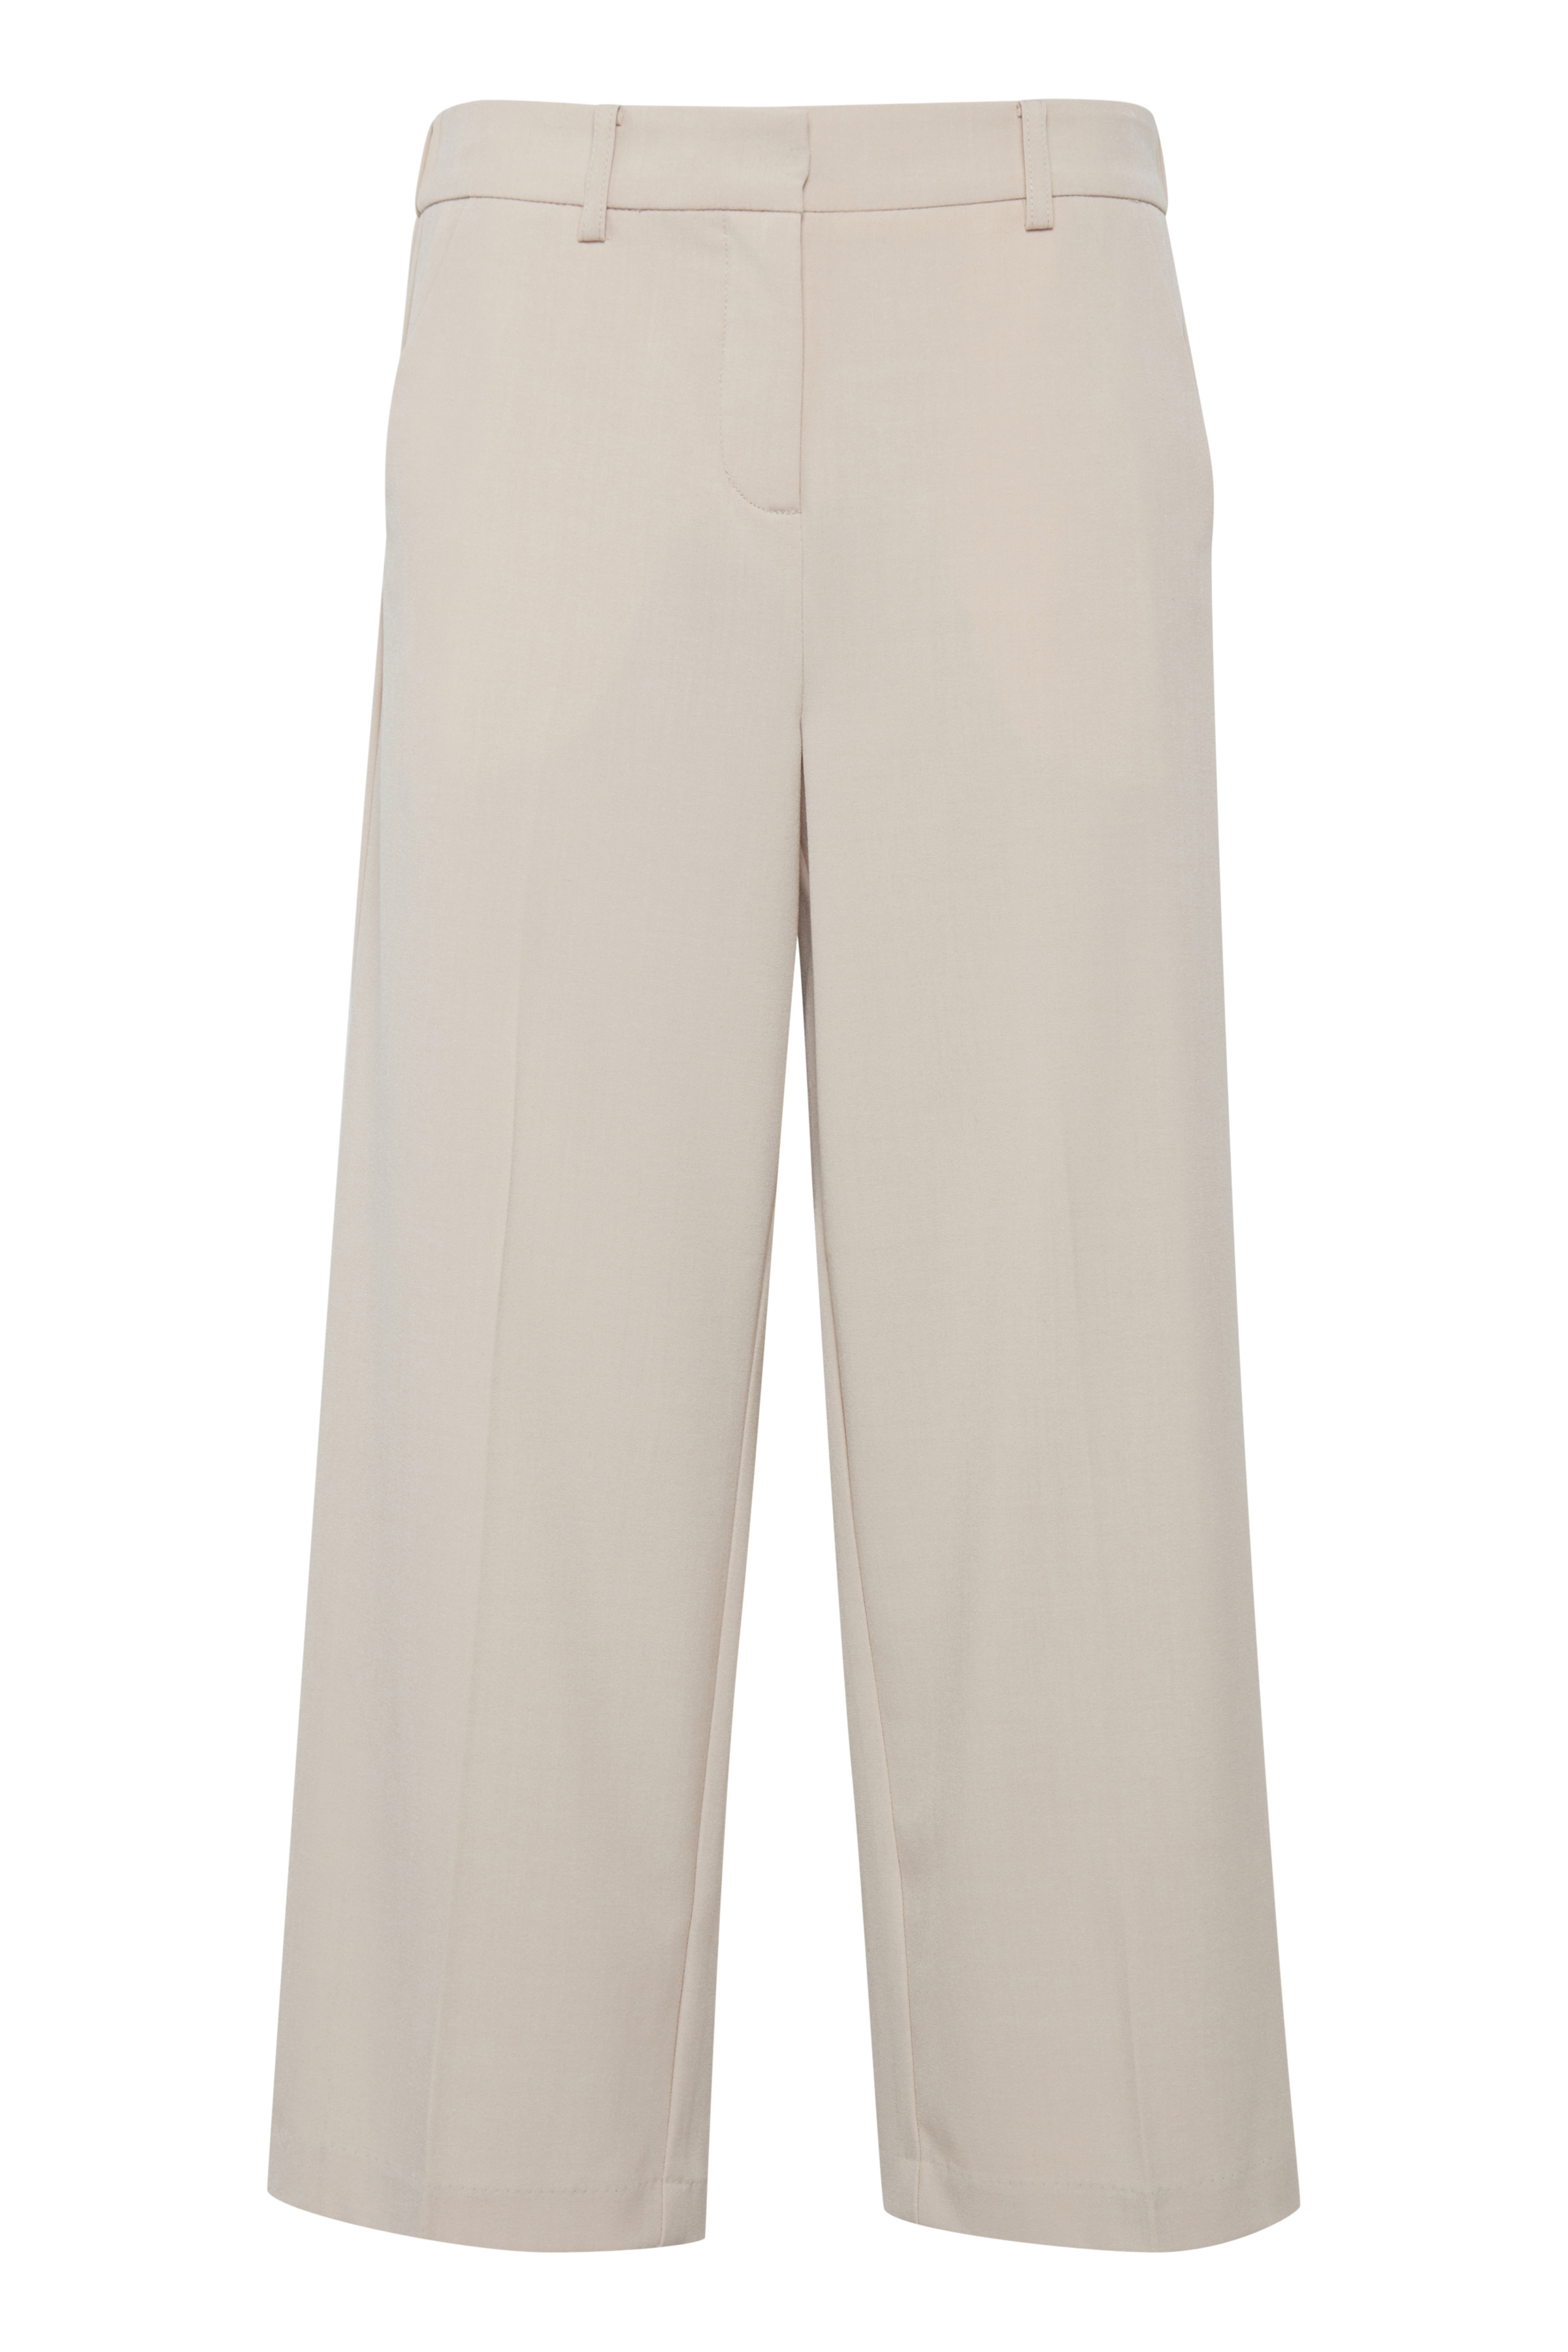 Moonlight Pants Casual fra b.young – Køb Moonlight Pants Casual fra str. 34-42 her